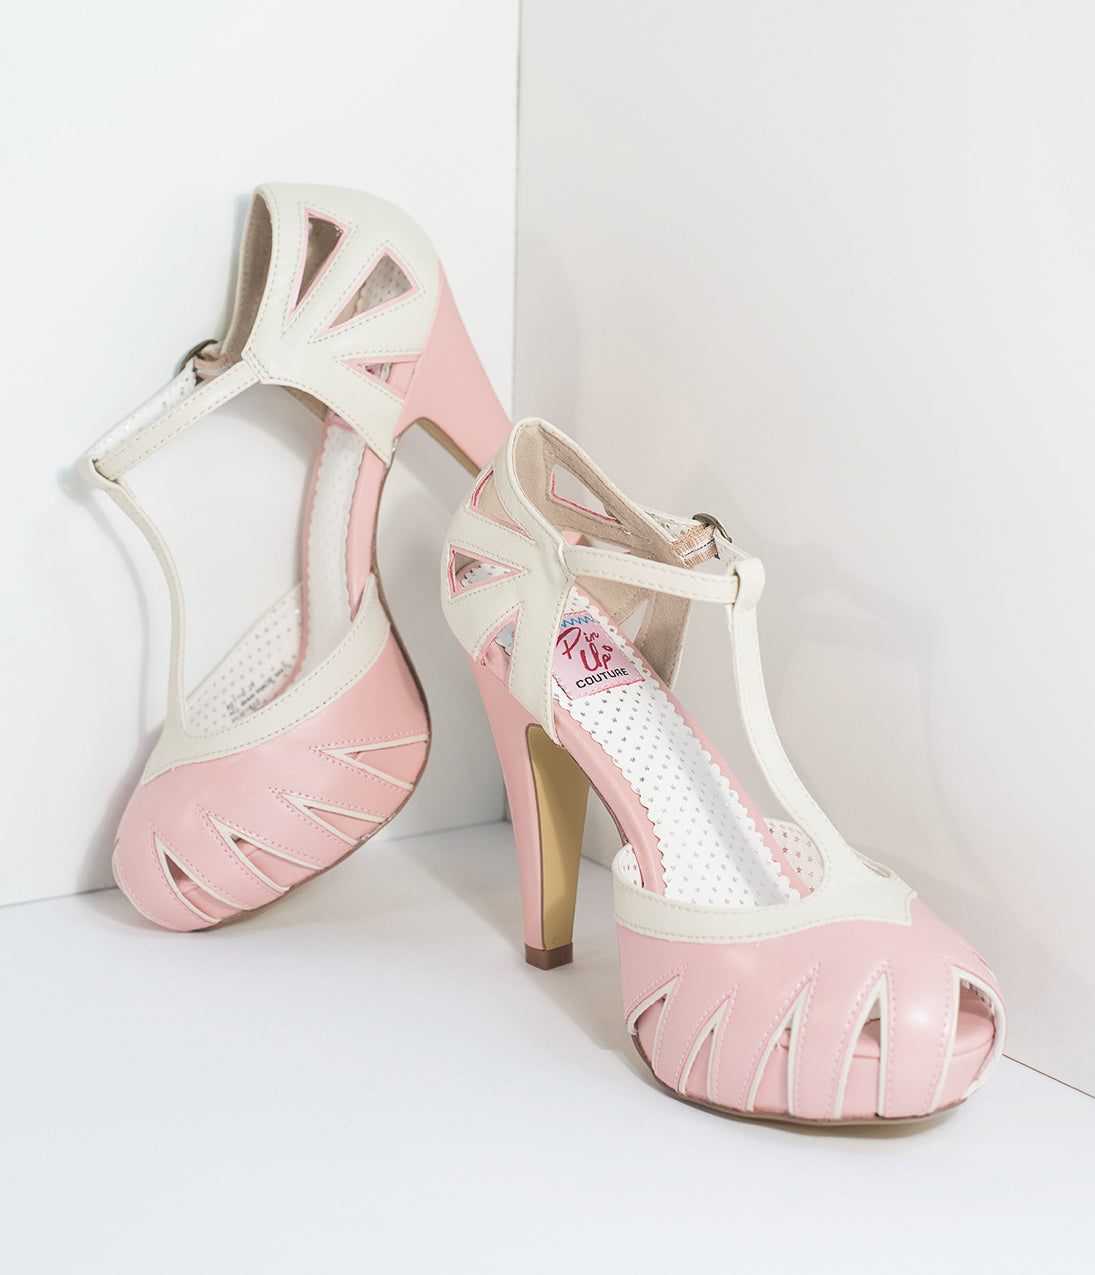 Pin Up Shoes- Heels, Pumps & Flats Vintage Style Light Pink  Cream T-Strap Platform Cutout Heels $68.00 AT vintagedancer.com